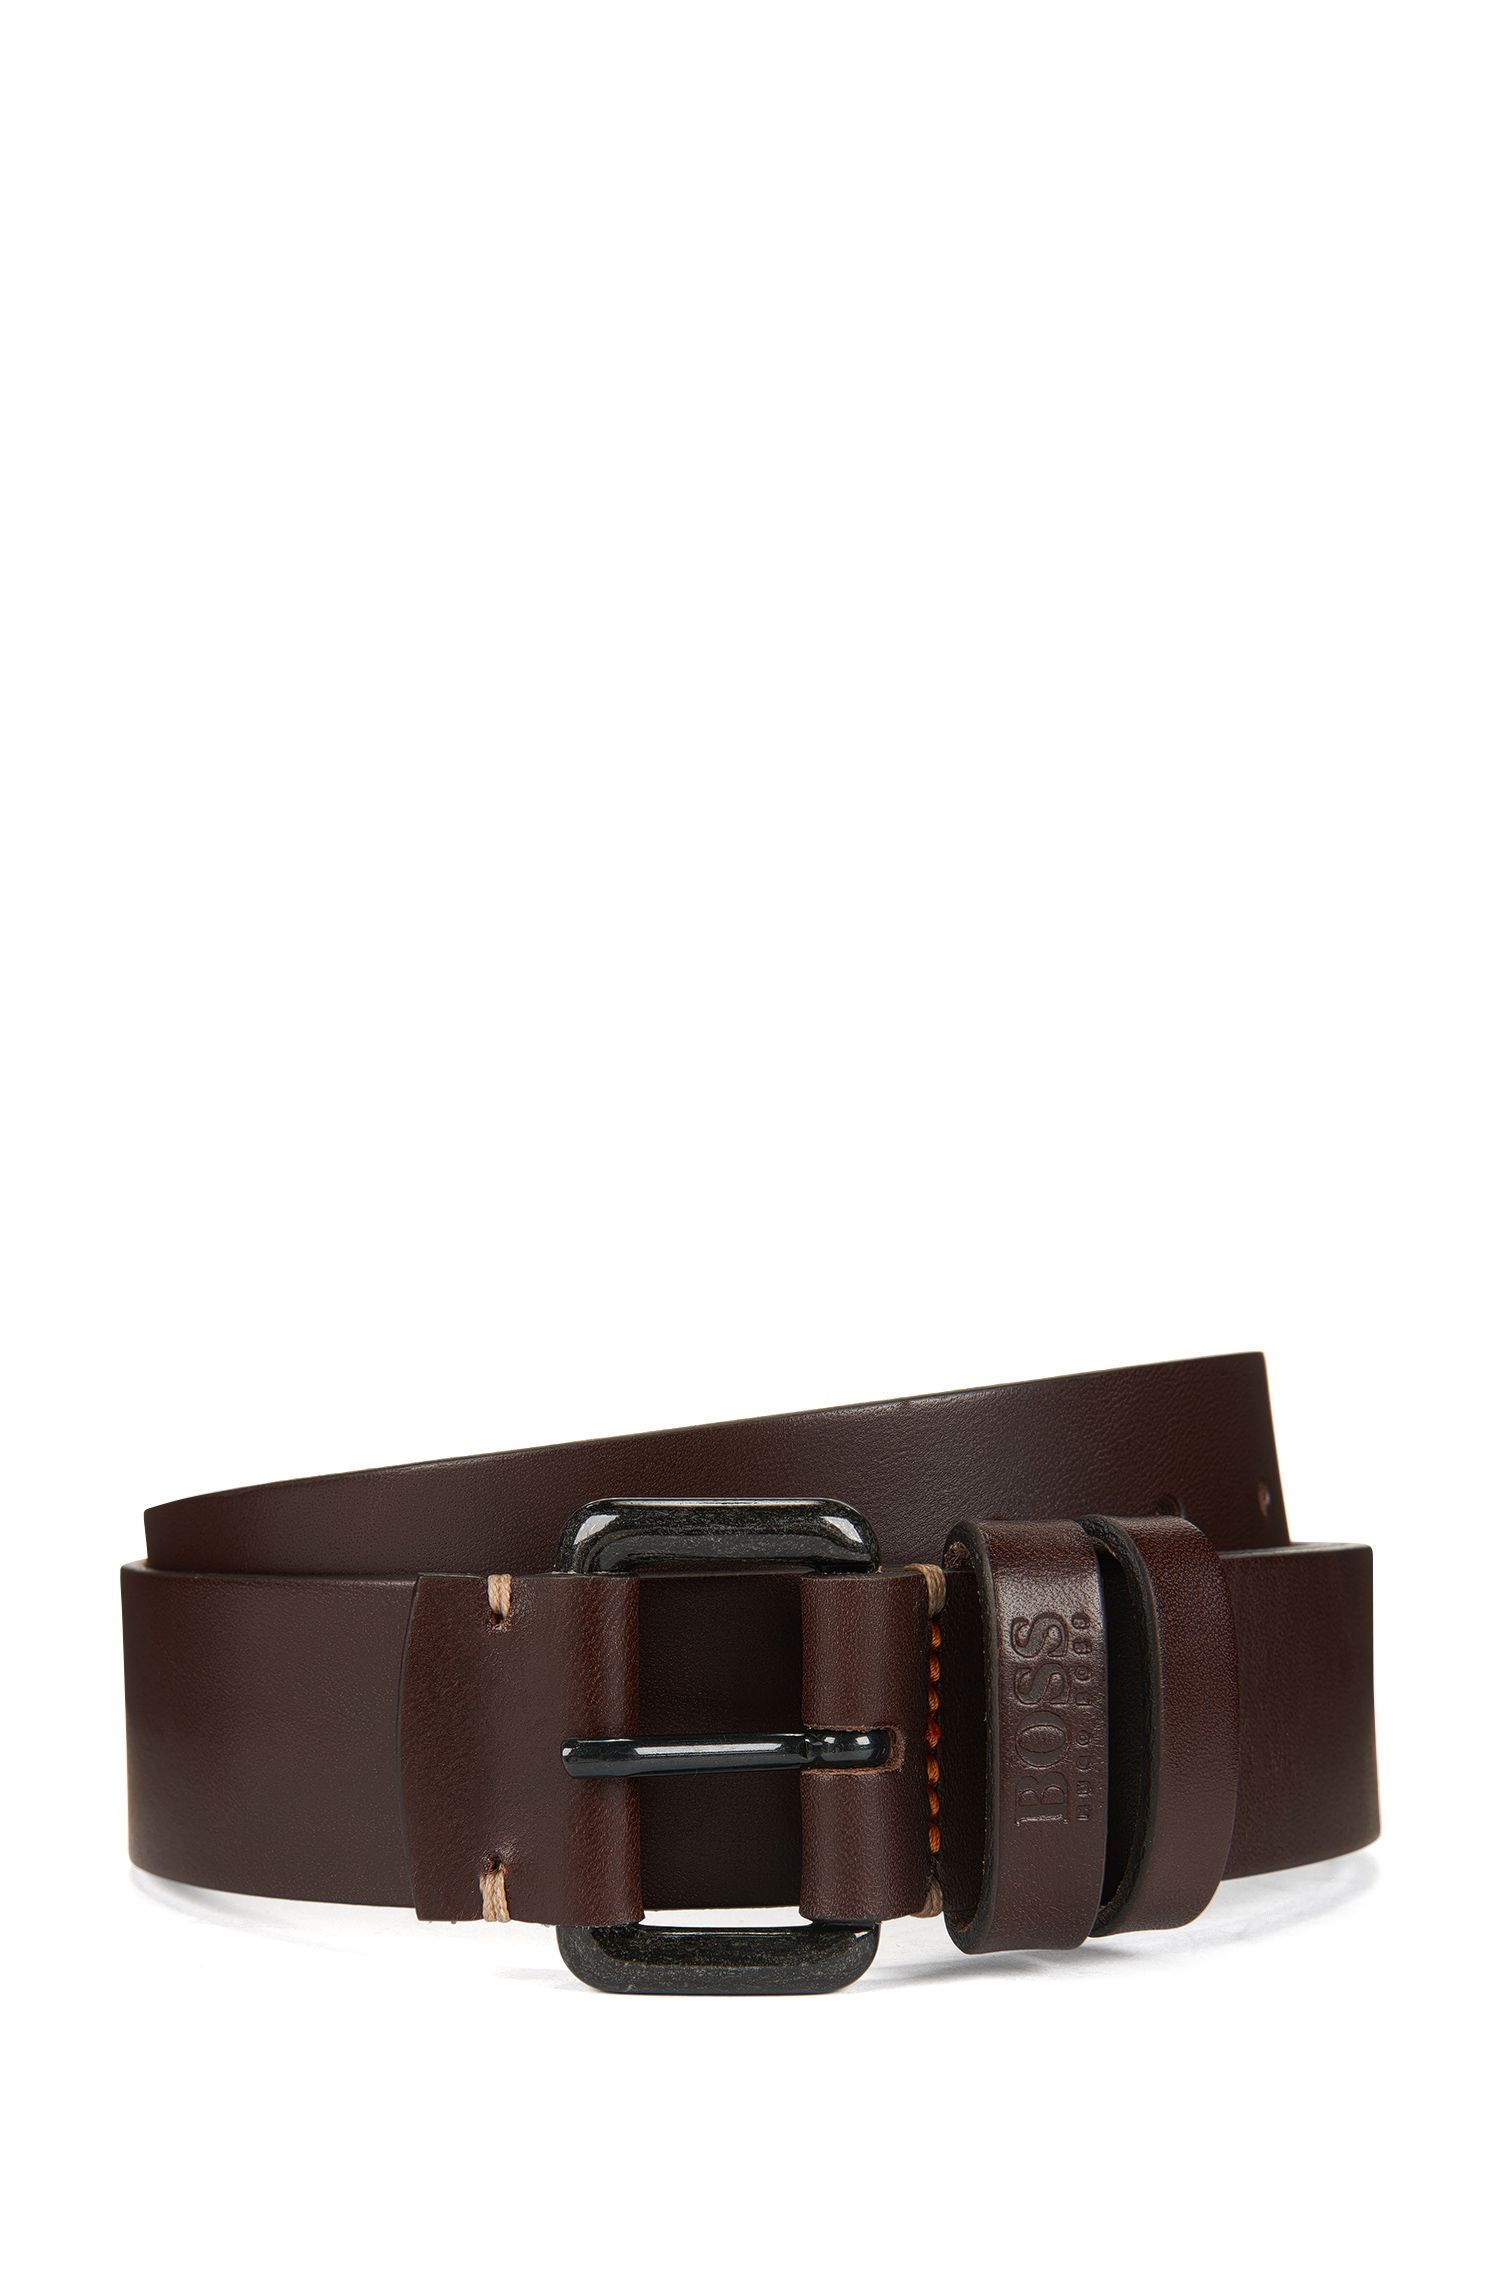 Leather belt with double-loop keeper